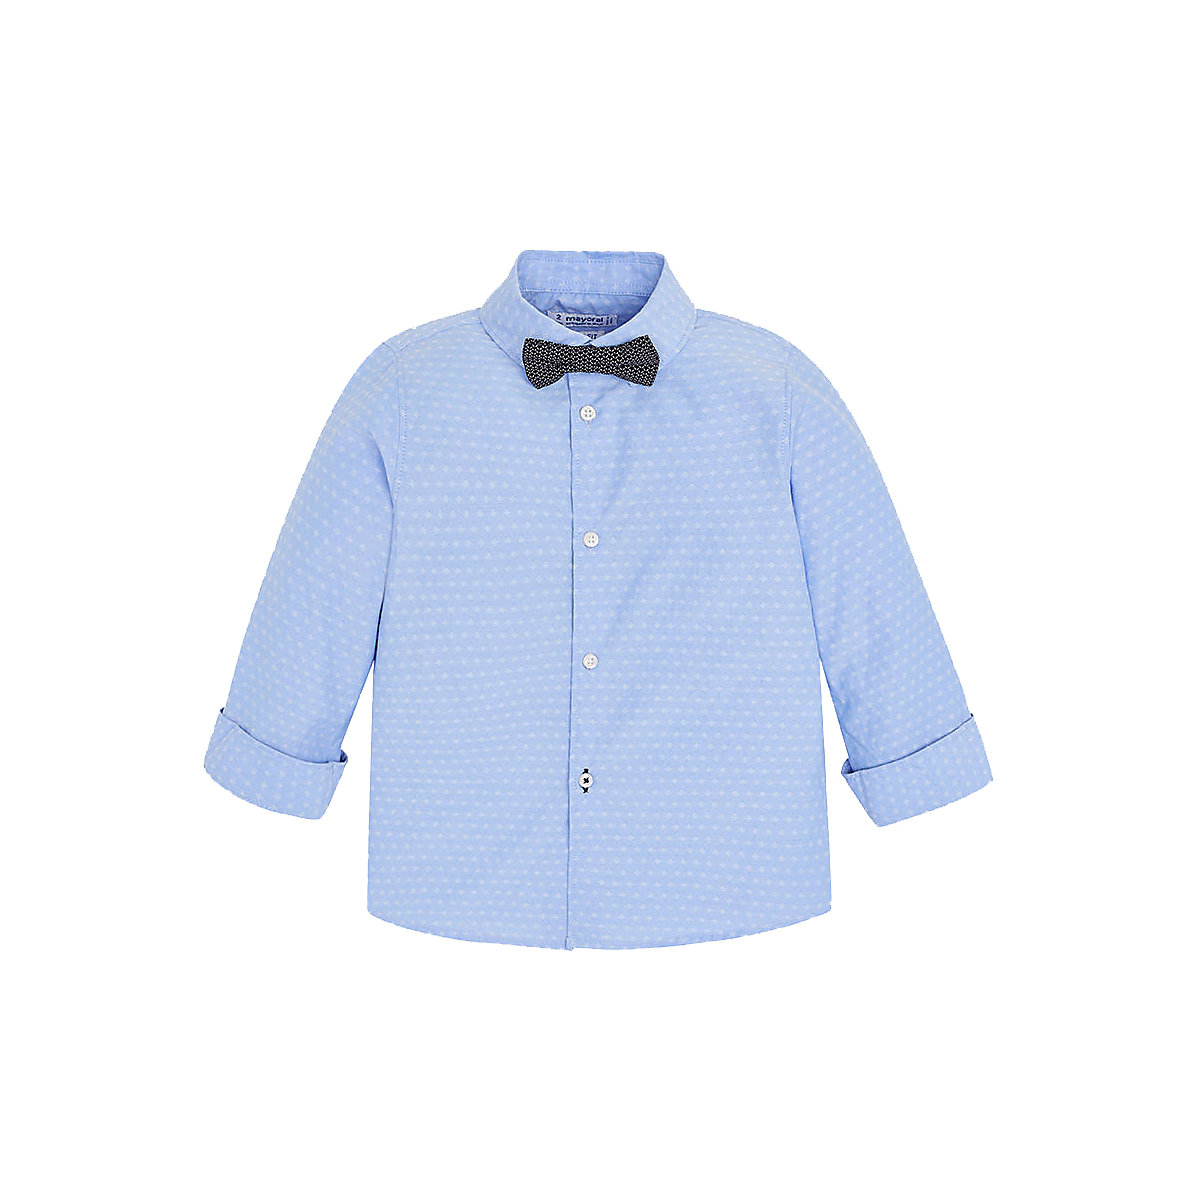 Blouses & Shirts MAYORAL 10690354 Children s Clothing shirt with long sleeve for a boy natural materials long sleeve color block chambray shirt